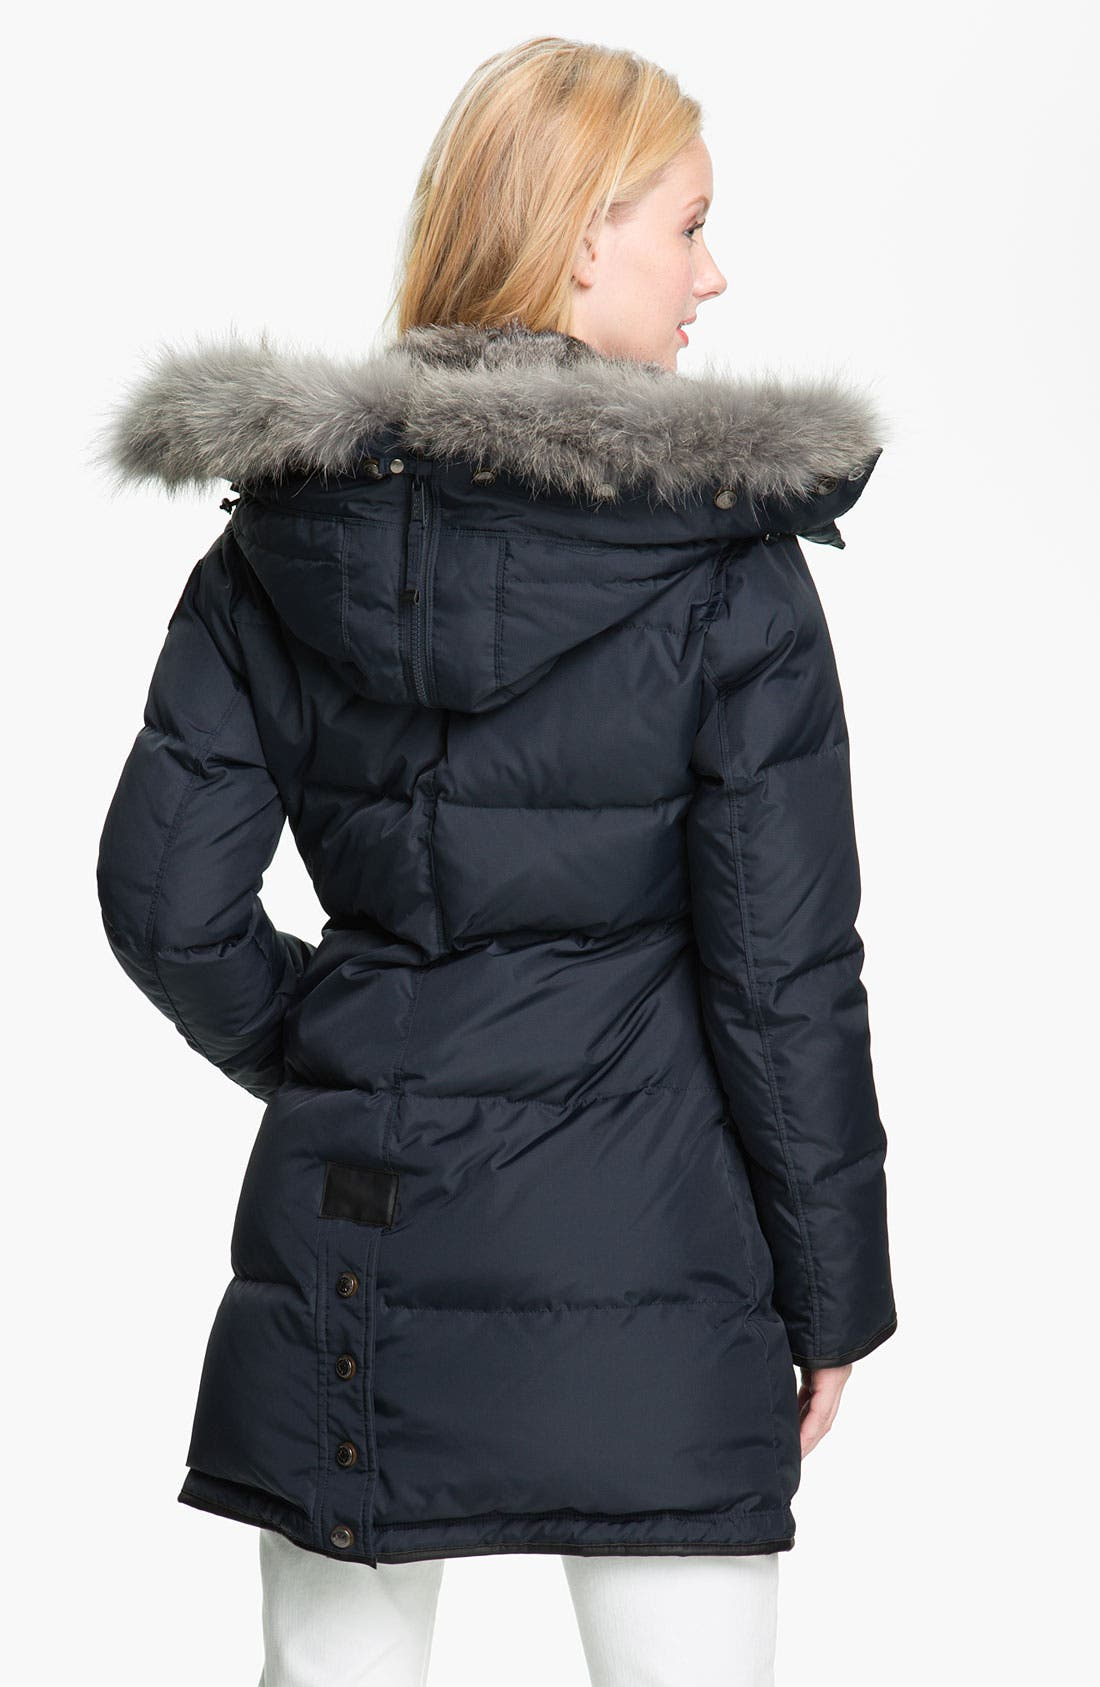 'Cougar' Down Parka with Genuine Coyote & Rabbit Fur,                             Alternate thumbnail 2, color,                             Navy